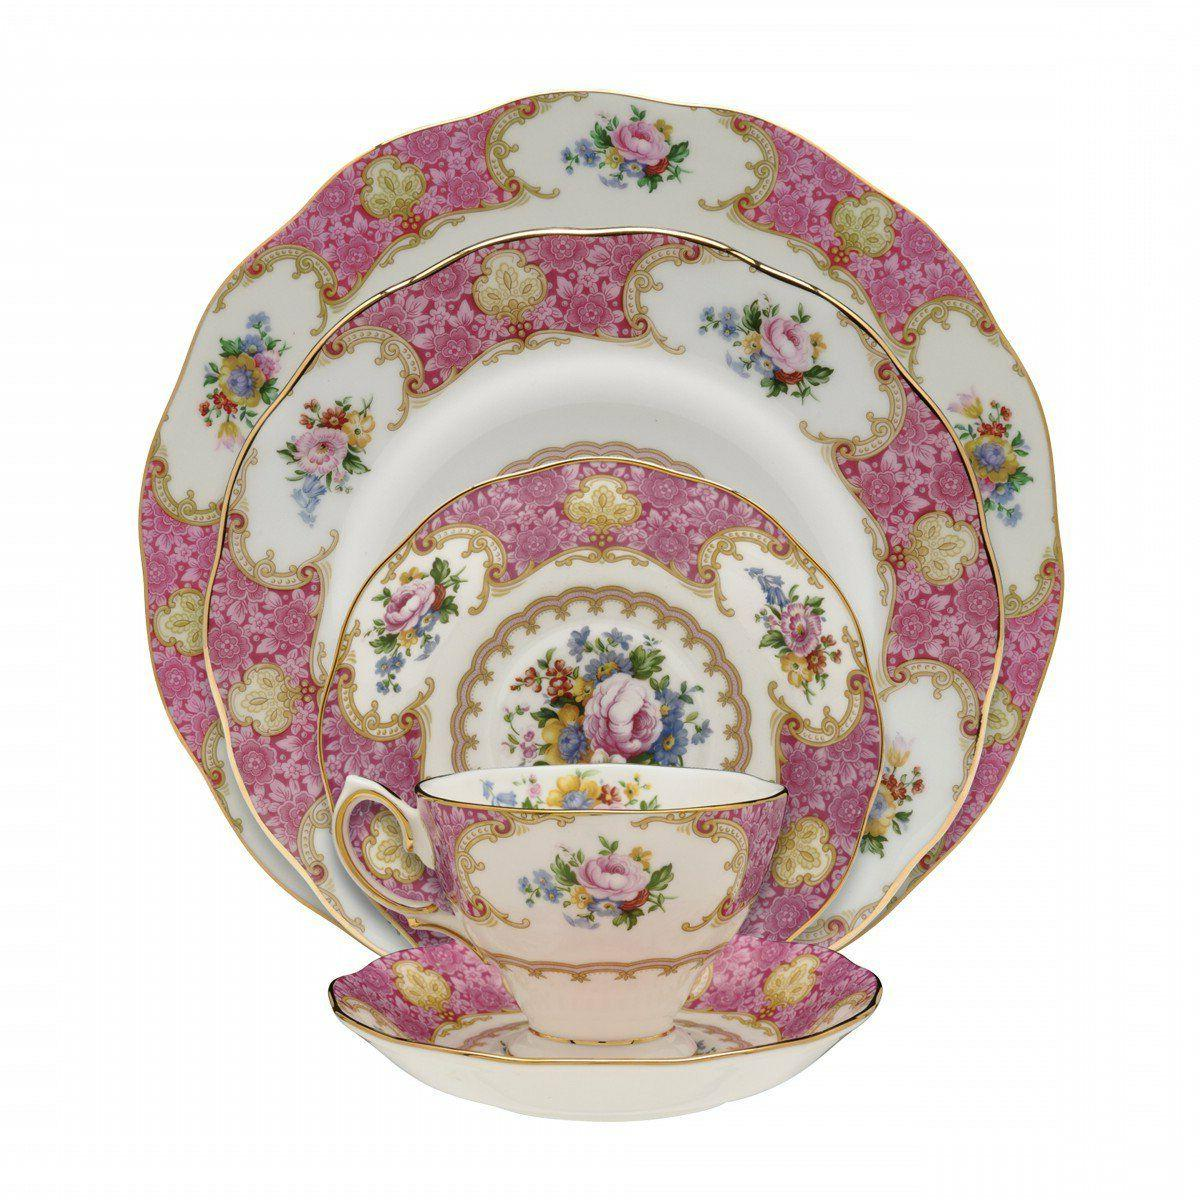 lady carlyle 60 pc set for 12